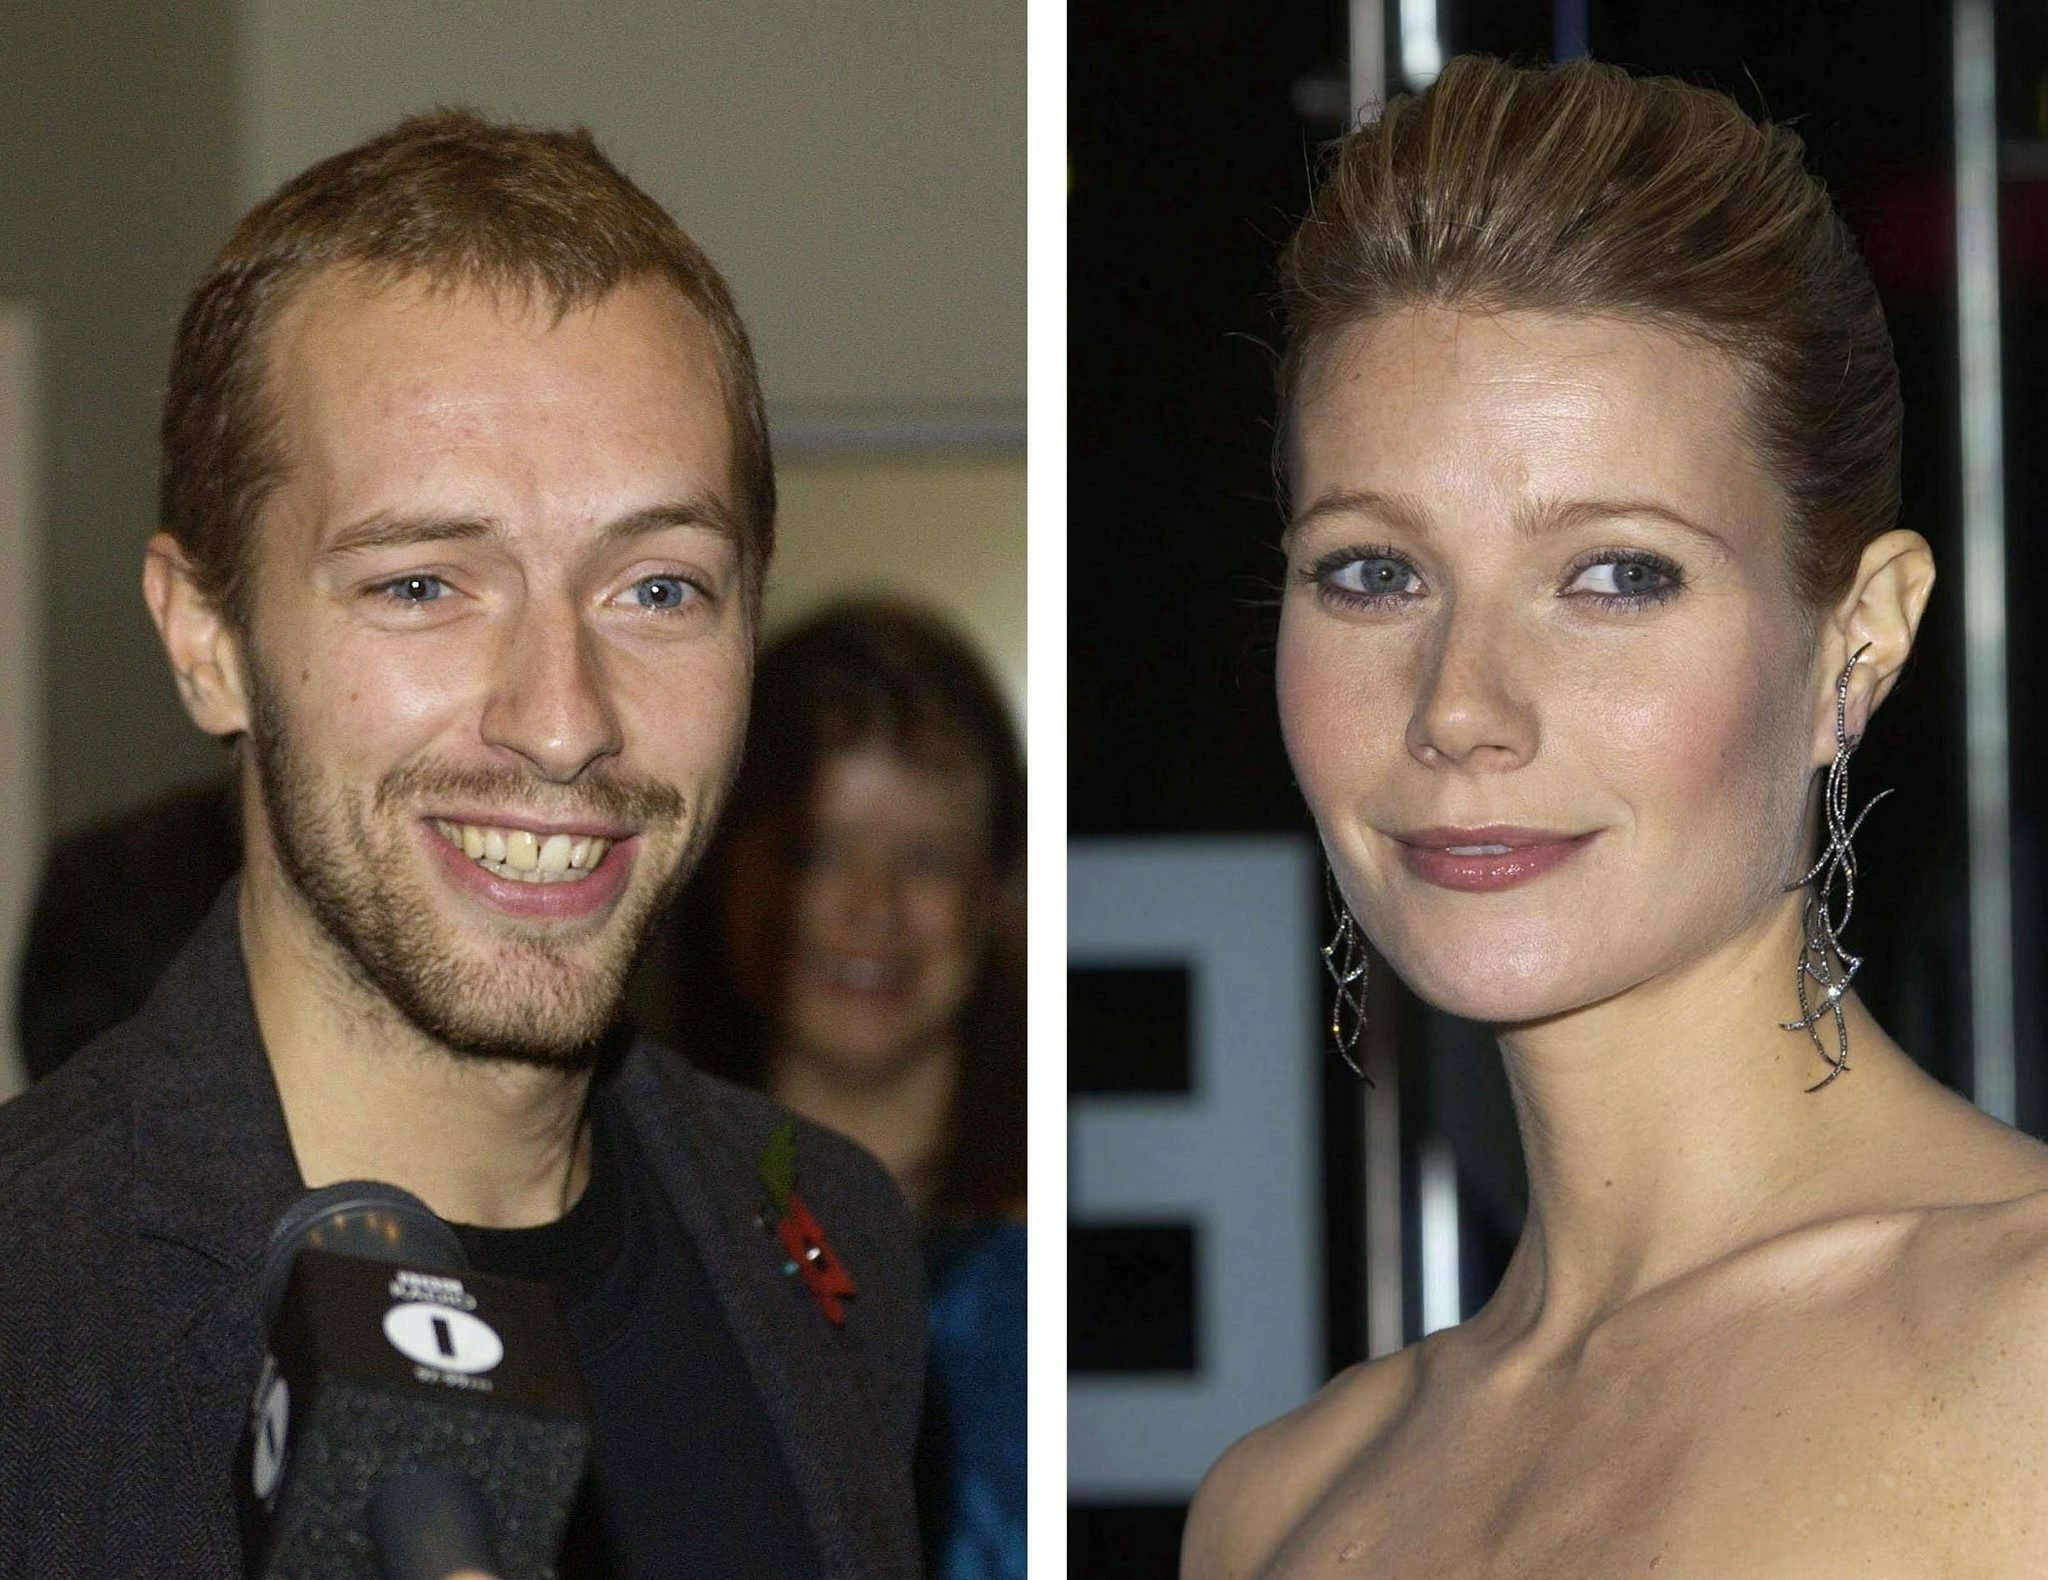 Hollywood star Gwyneth Paltrow and rocker Chris Martin, shown in these filers from 6 November 2003, are expecting their first